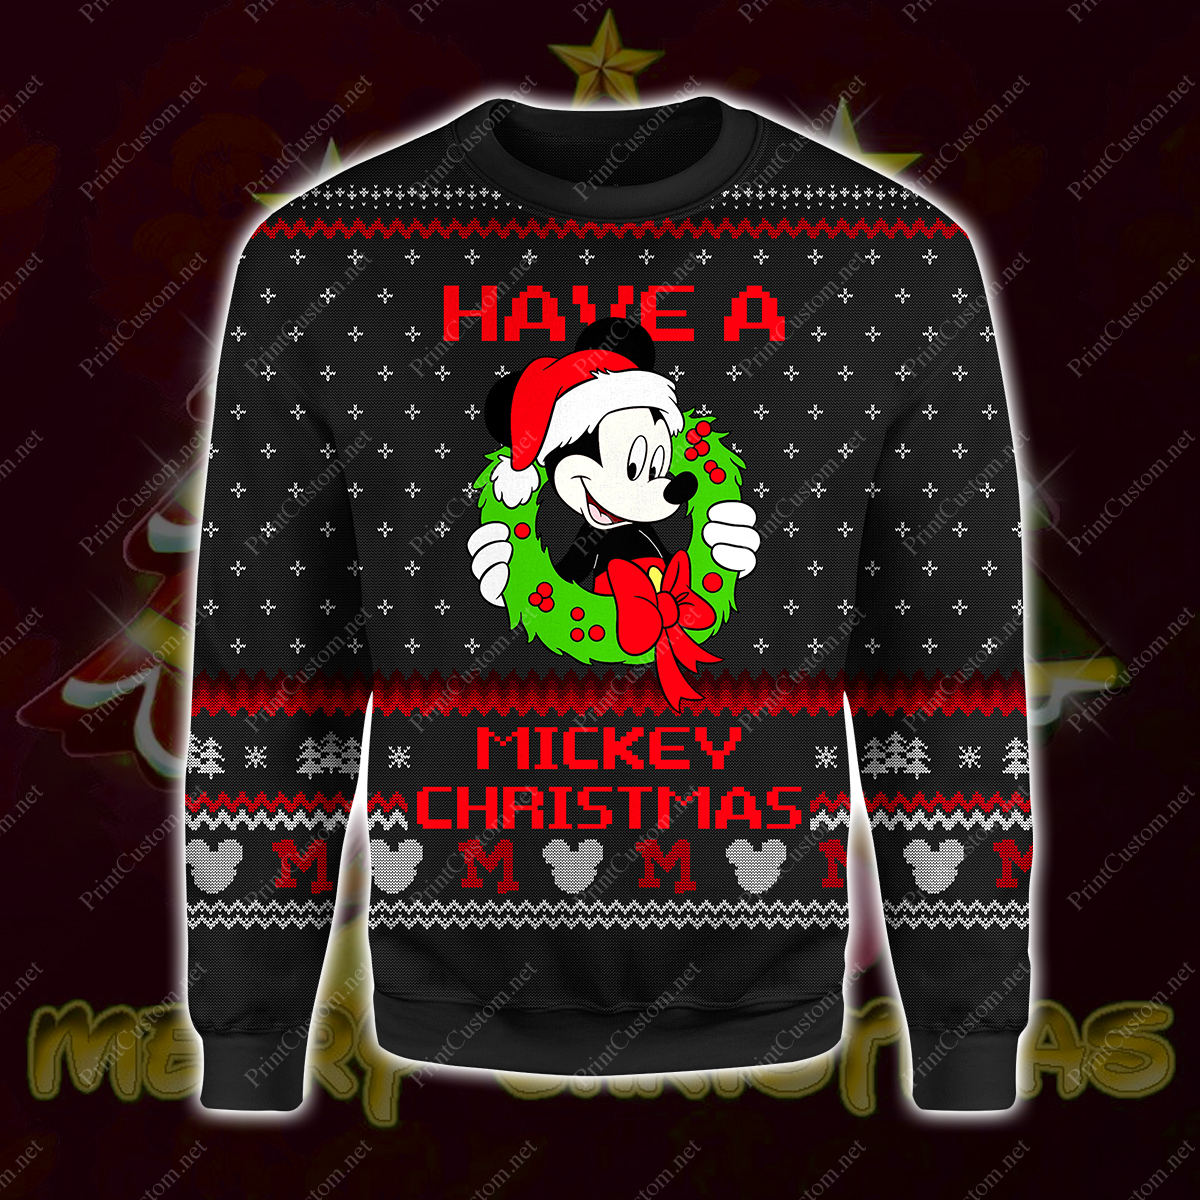 Have a mickey christmas full printing ugly christmas sweater 4